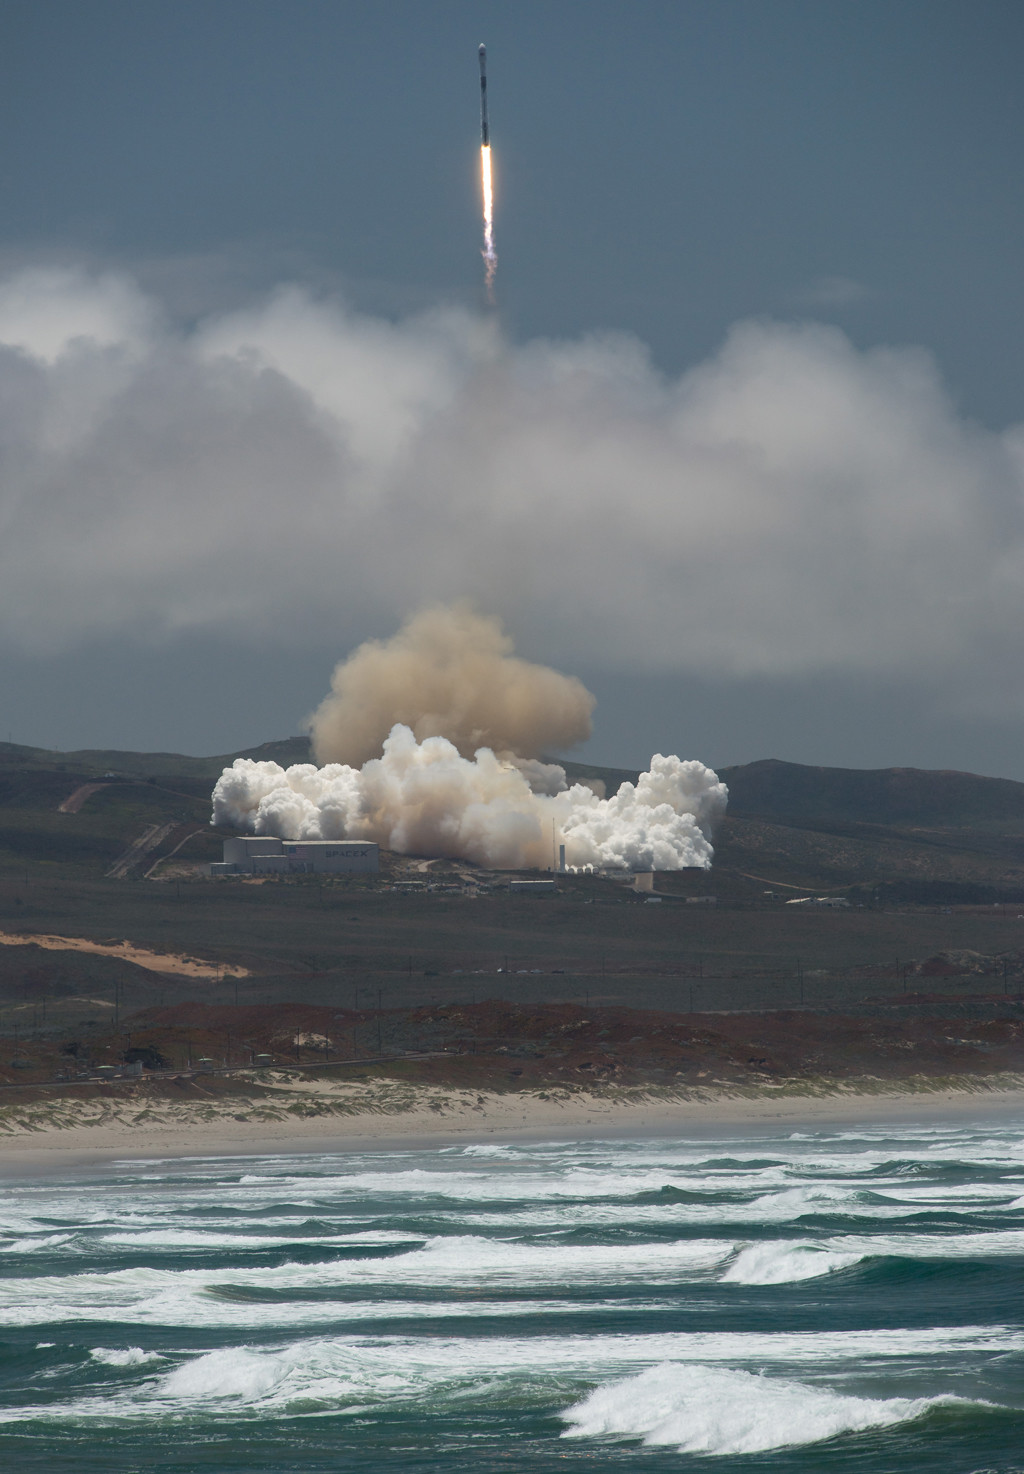 The NASA/German Research Centre for Geosciences GRACE Follow-On spacecraft launches onboard a SpaceX Falcon 9, 22 May 2018, from Vandenberg Air Force Base in California.